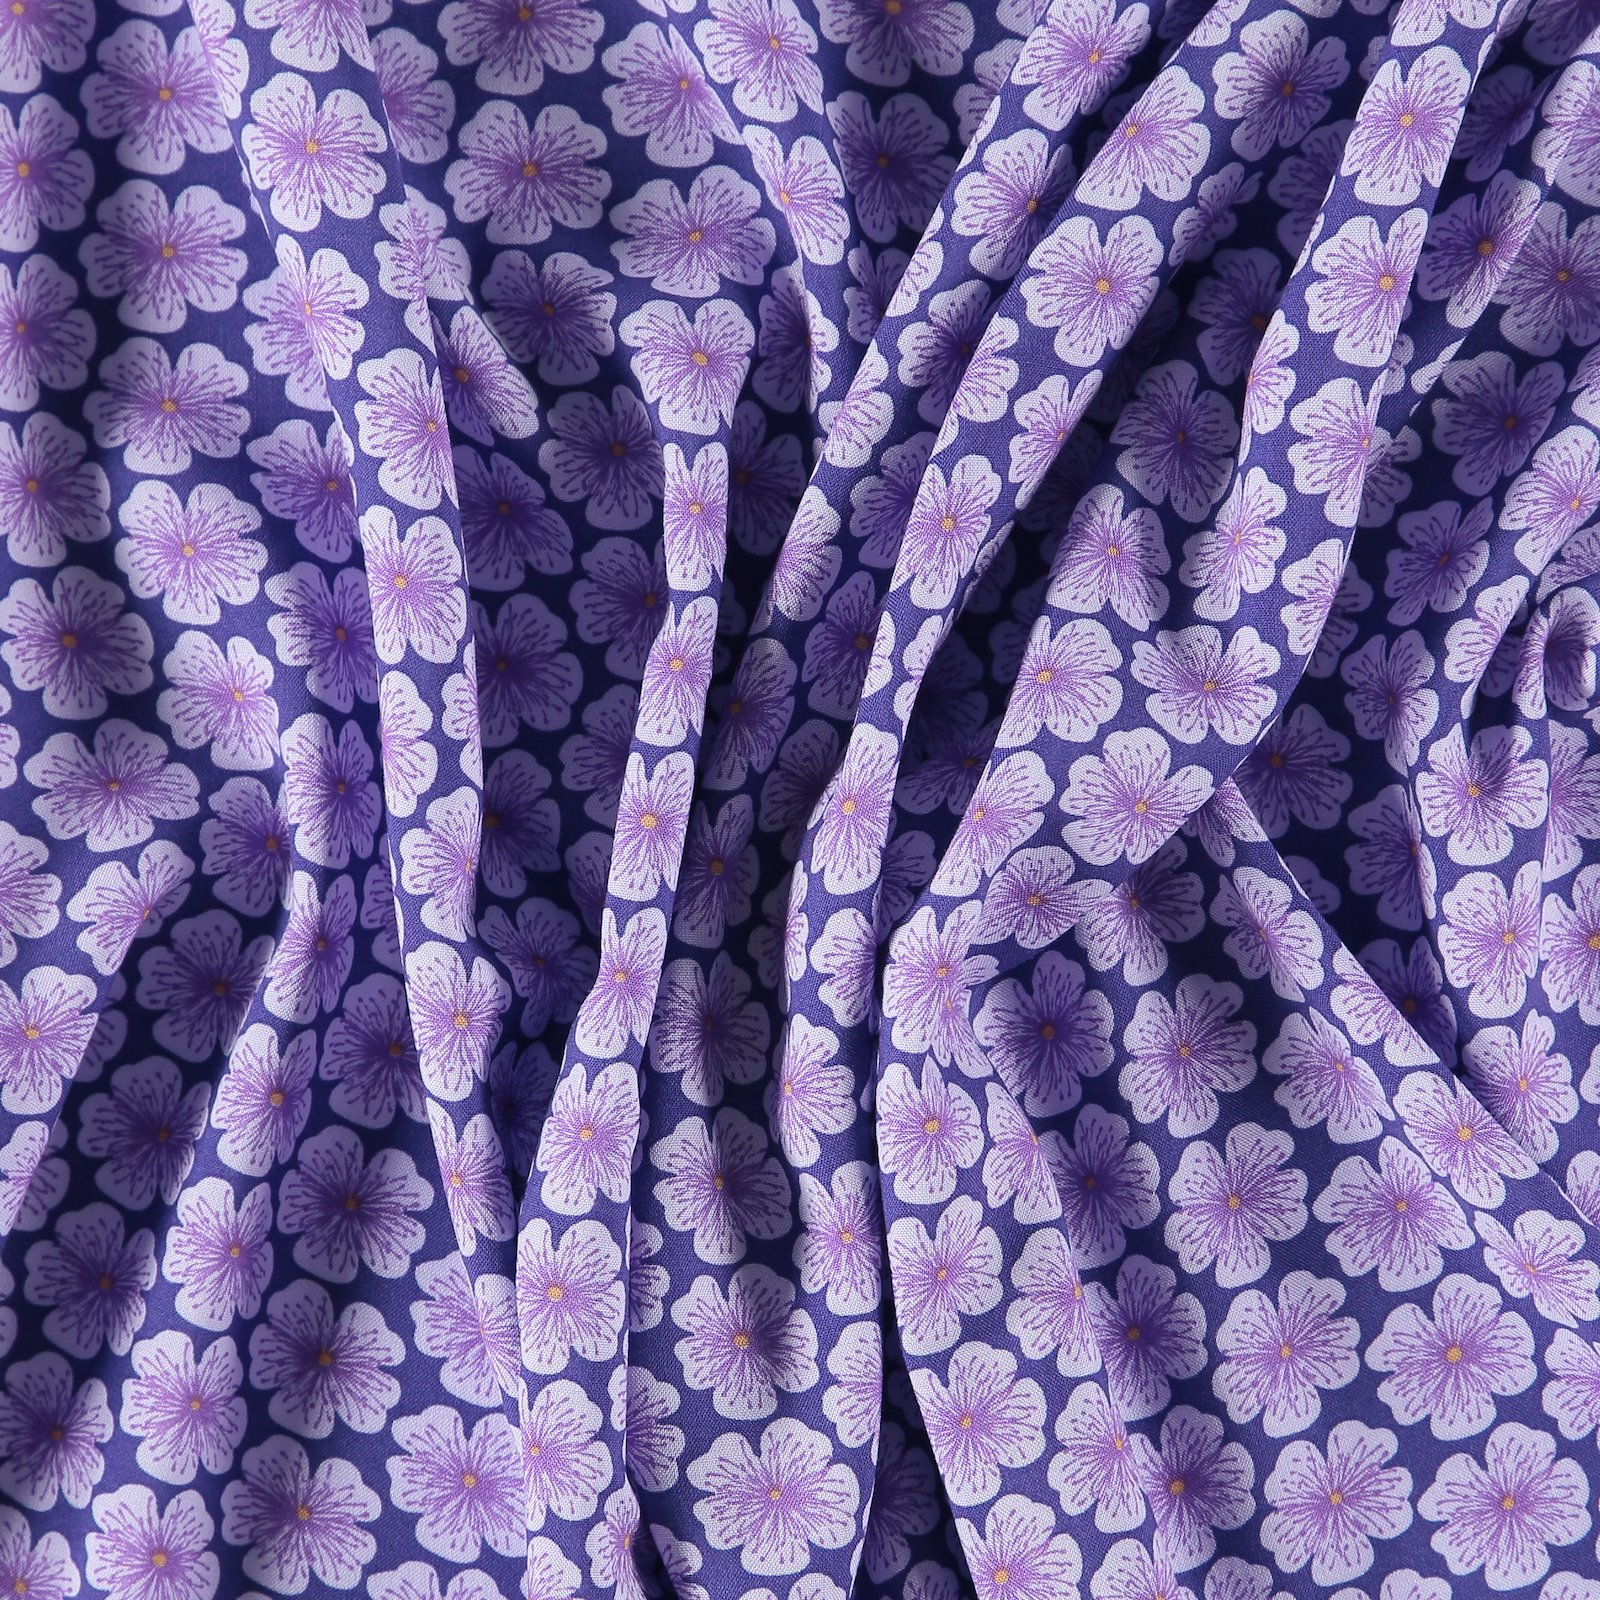 Woven viscose purple with flowers